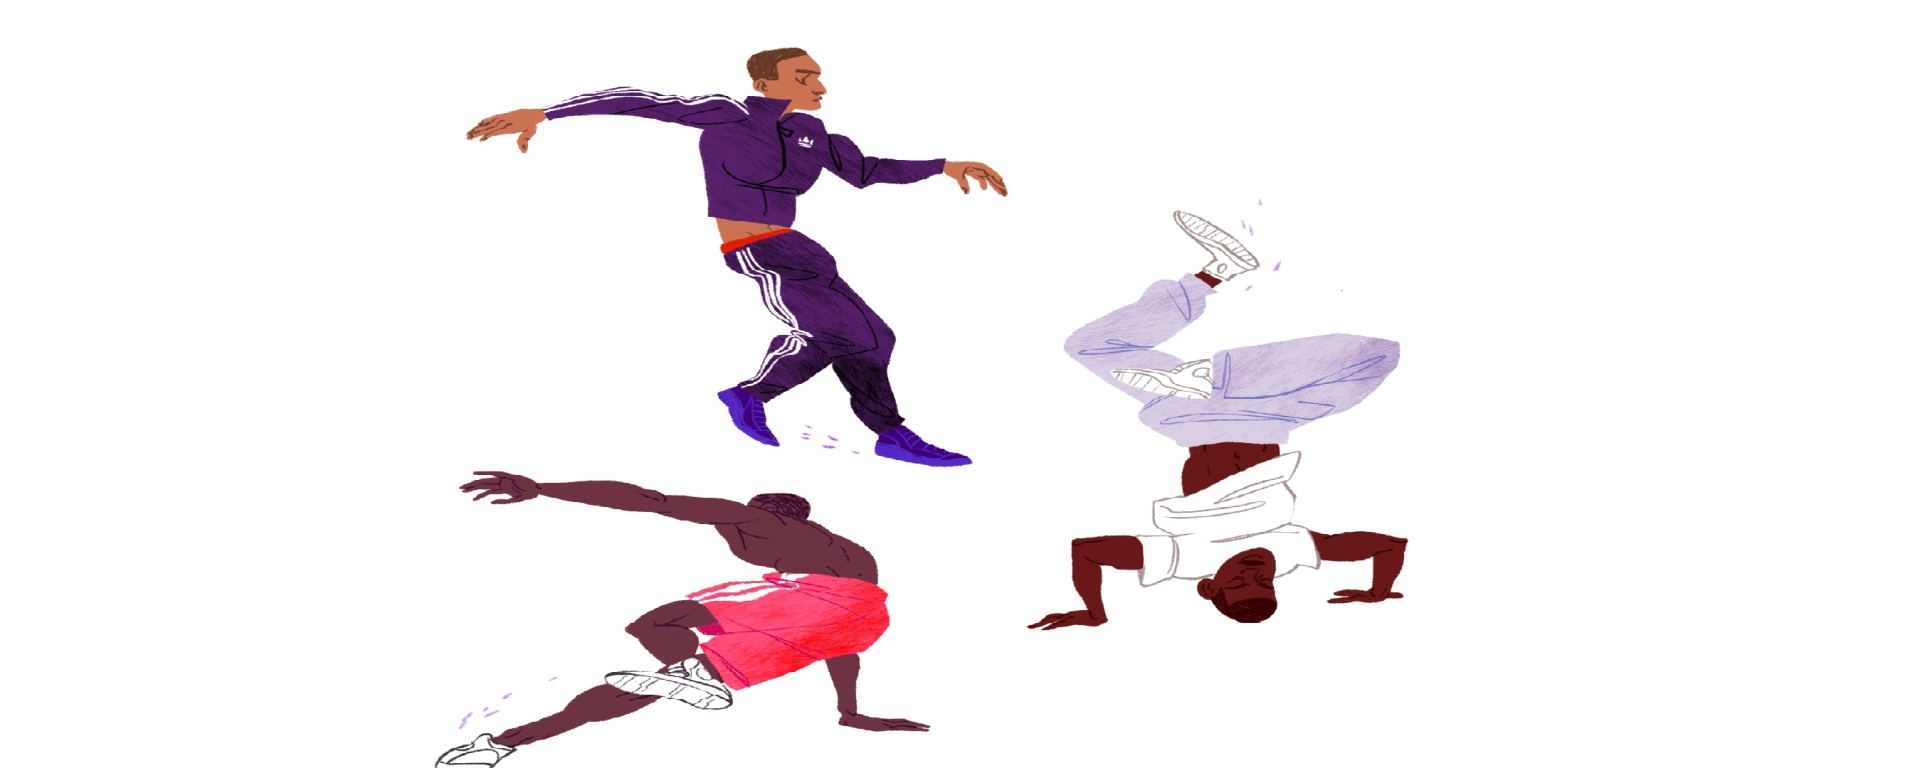 new york, break dancers, travel, illustration